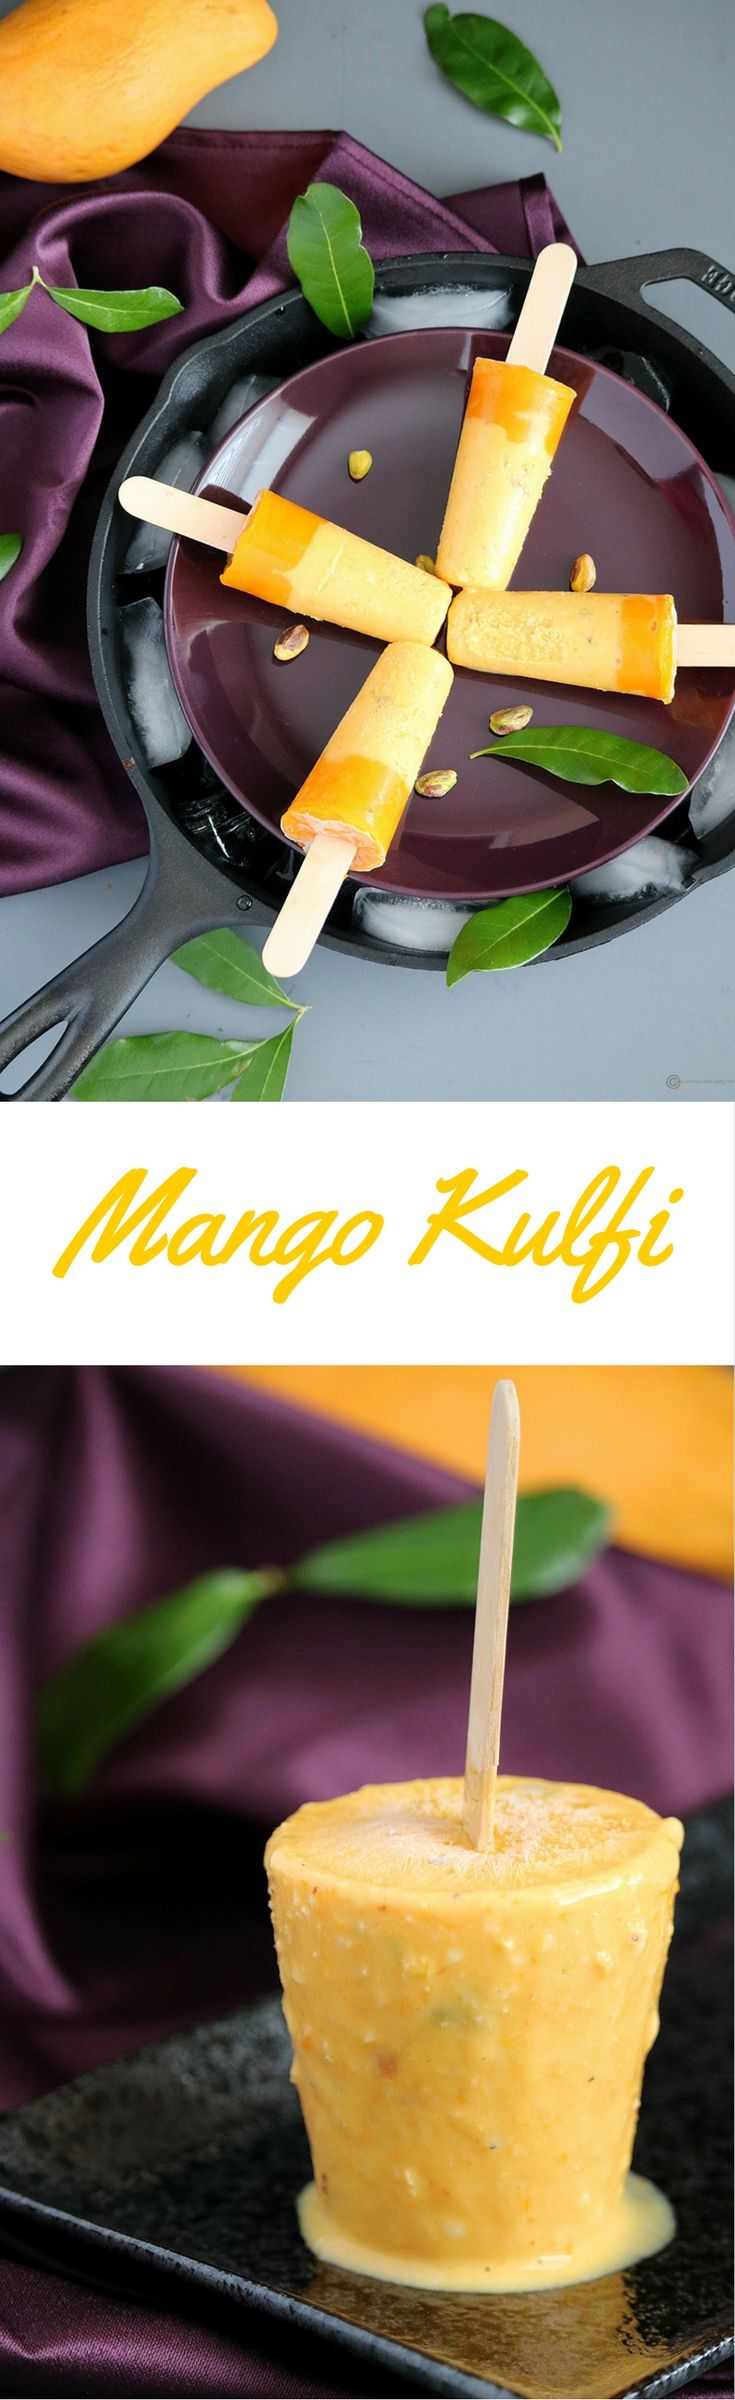 Mango Kulfi is a rich, creamy and nutty Indian Summer Frozen Treat | Ice Cream made by reducing milk until thick and flavored with nuts and mango pulp.